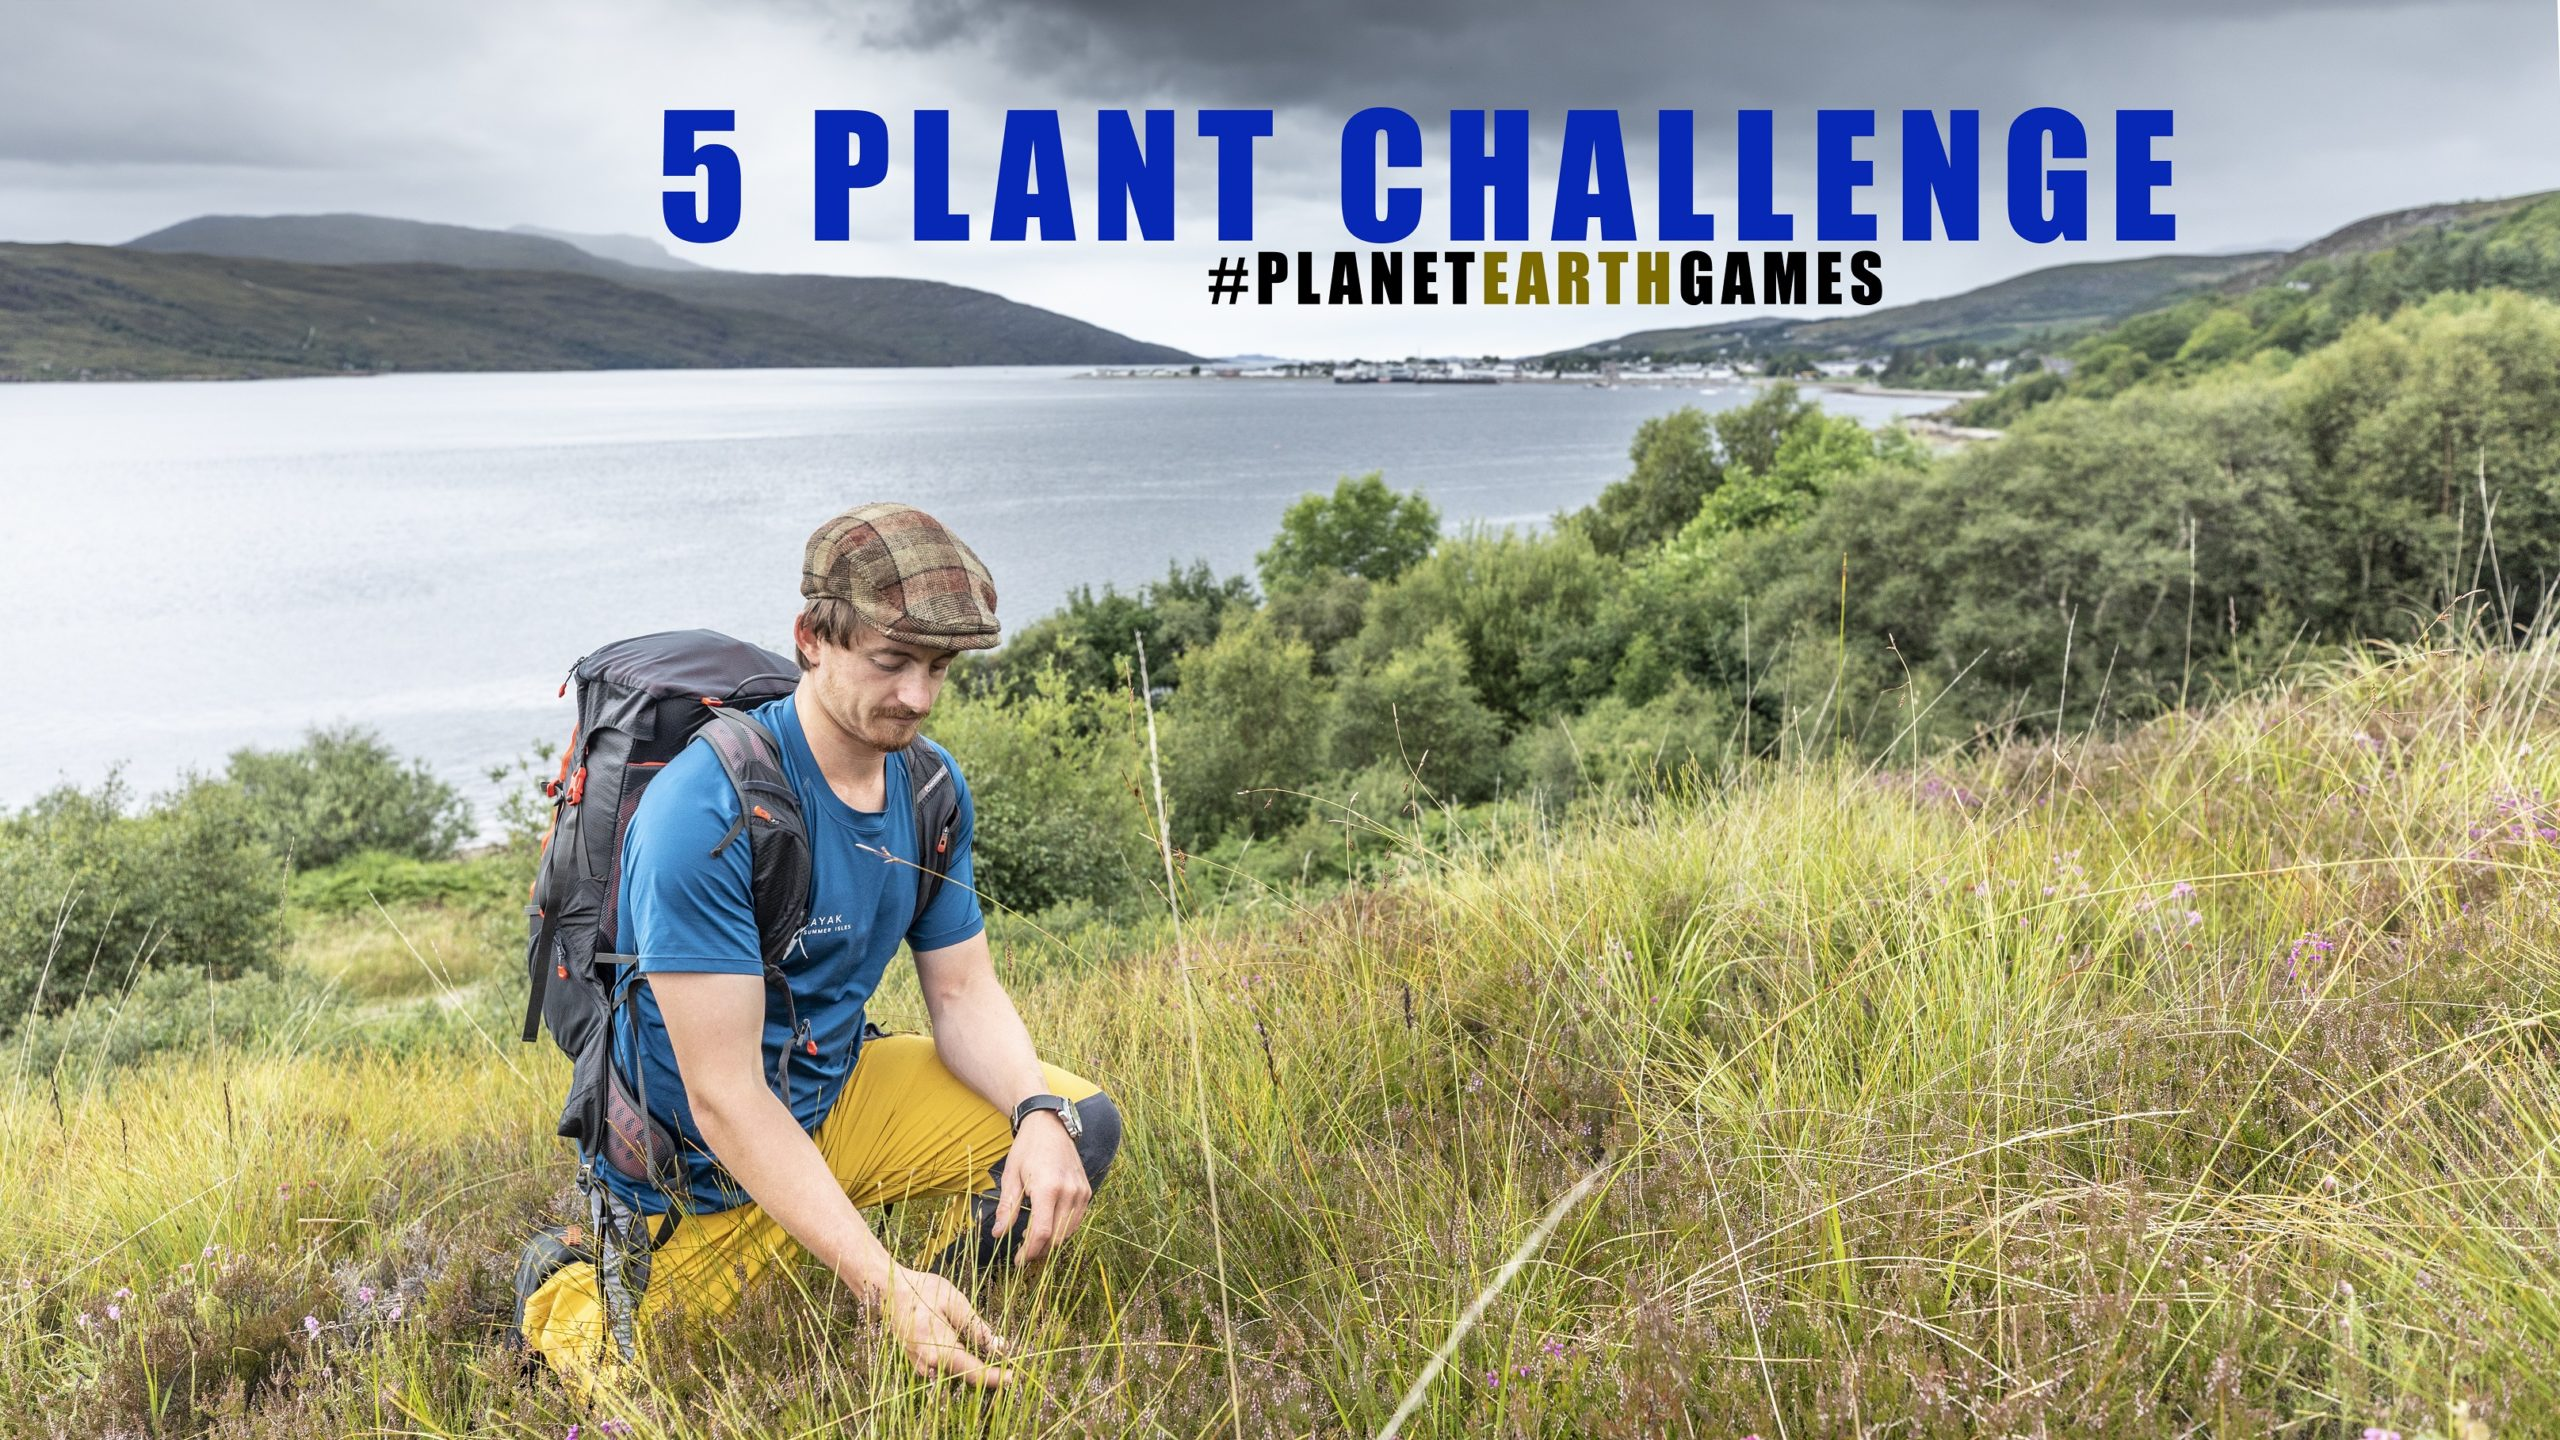 Will Copestake has pledged his support to the Planet Earth Games